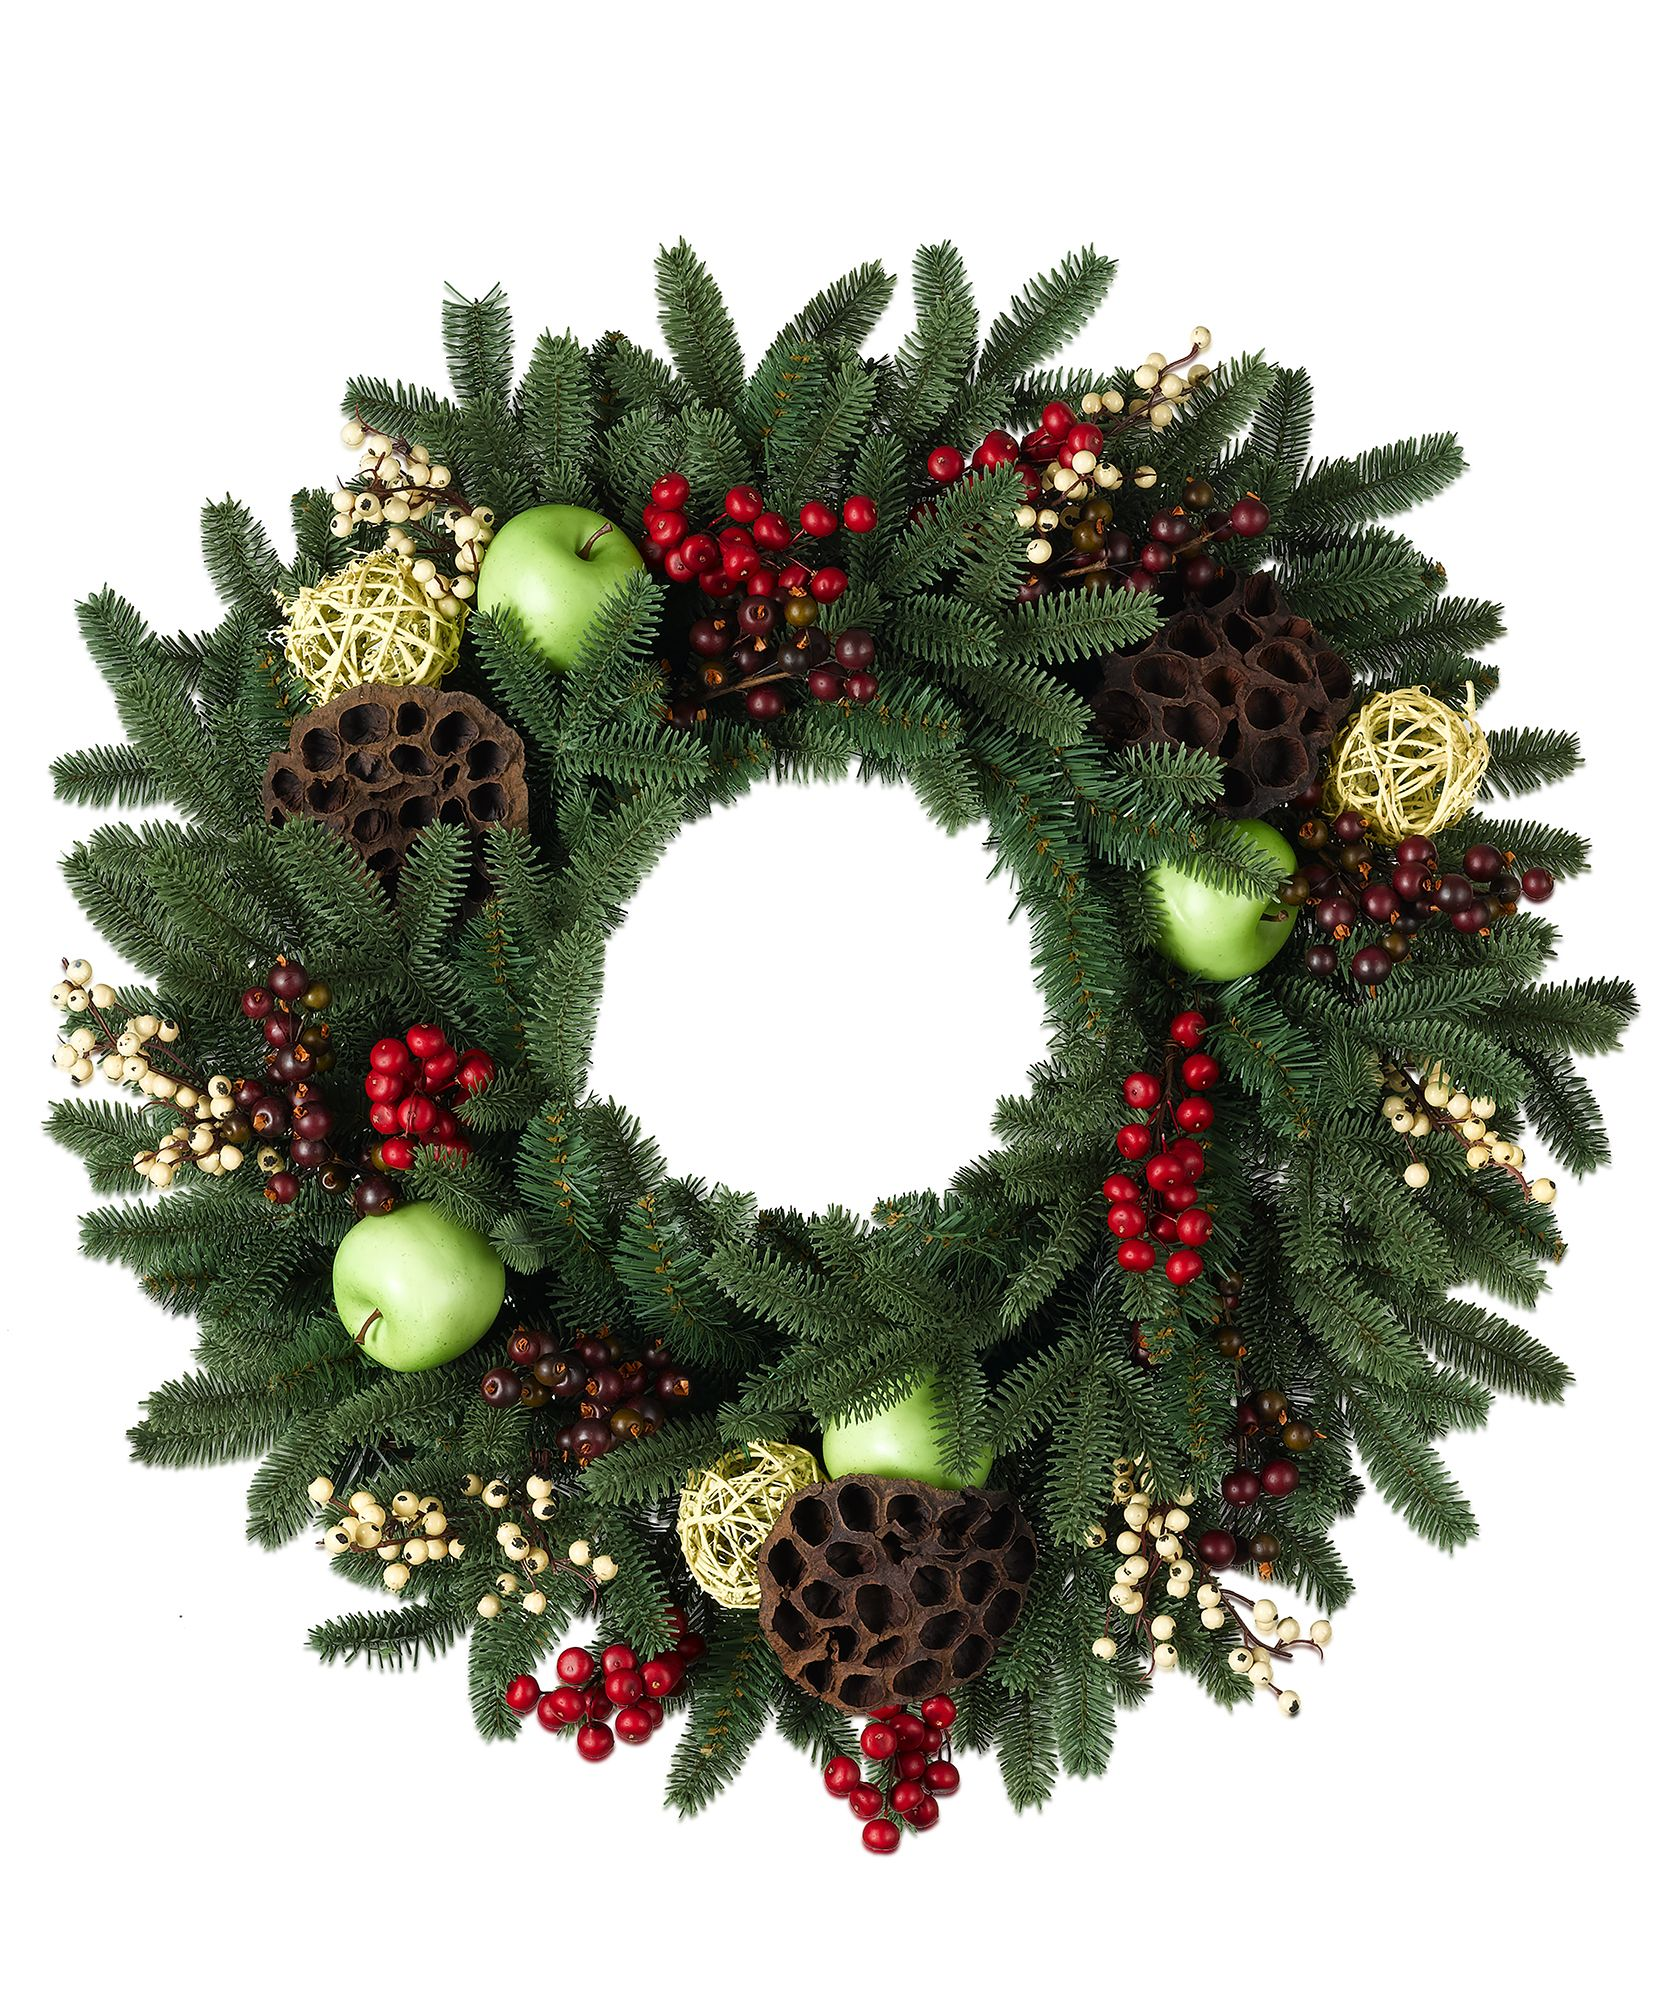 55 Best Christmas Door Wreath Ideas 2017 - Decorating with ...